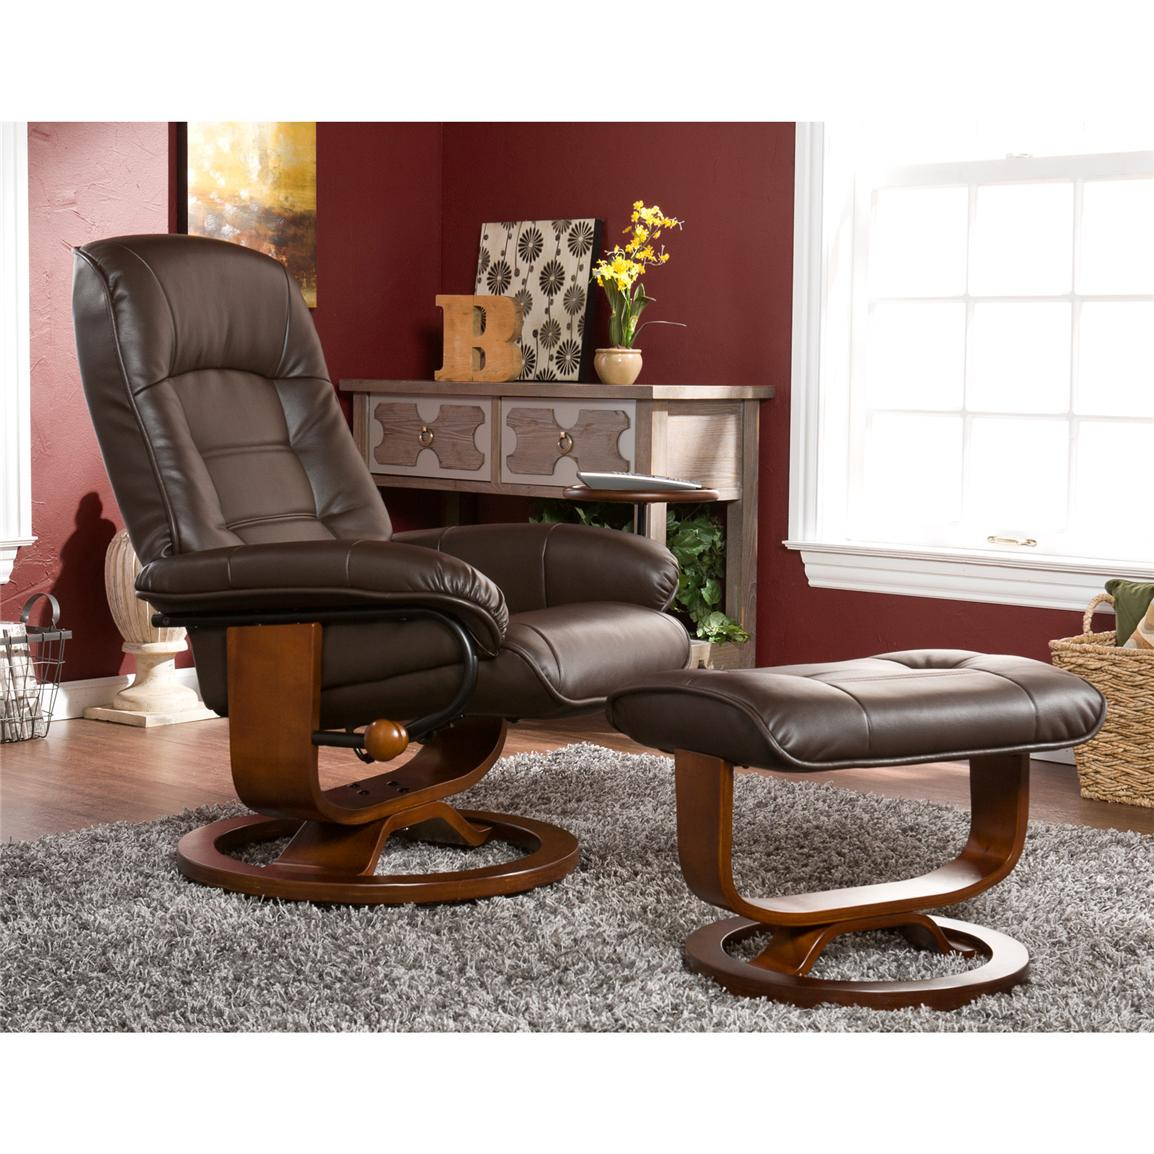 Holly & Martin™ Hemphill Leather Recliner and Ottoman, Cafe Brown